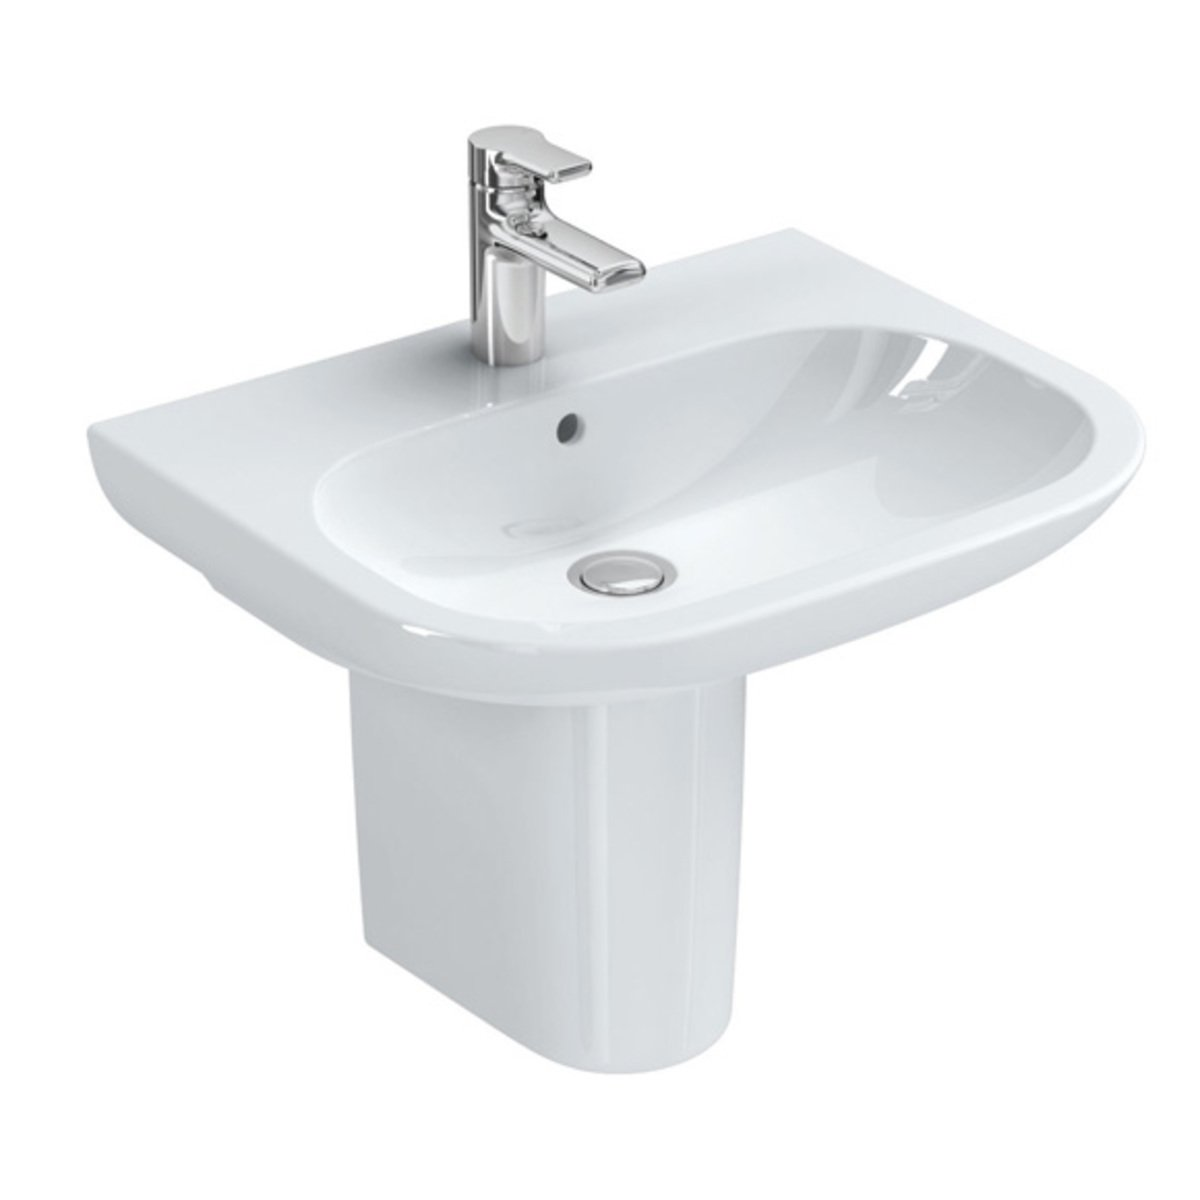 Ideal standard softmood lavabo blanc t055401 for Largeur lavabo standard